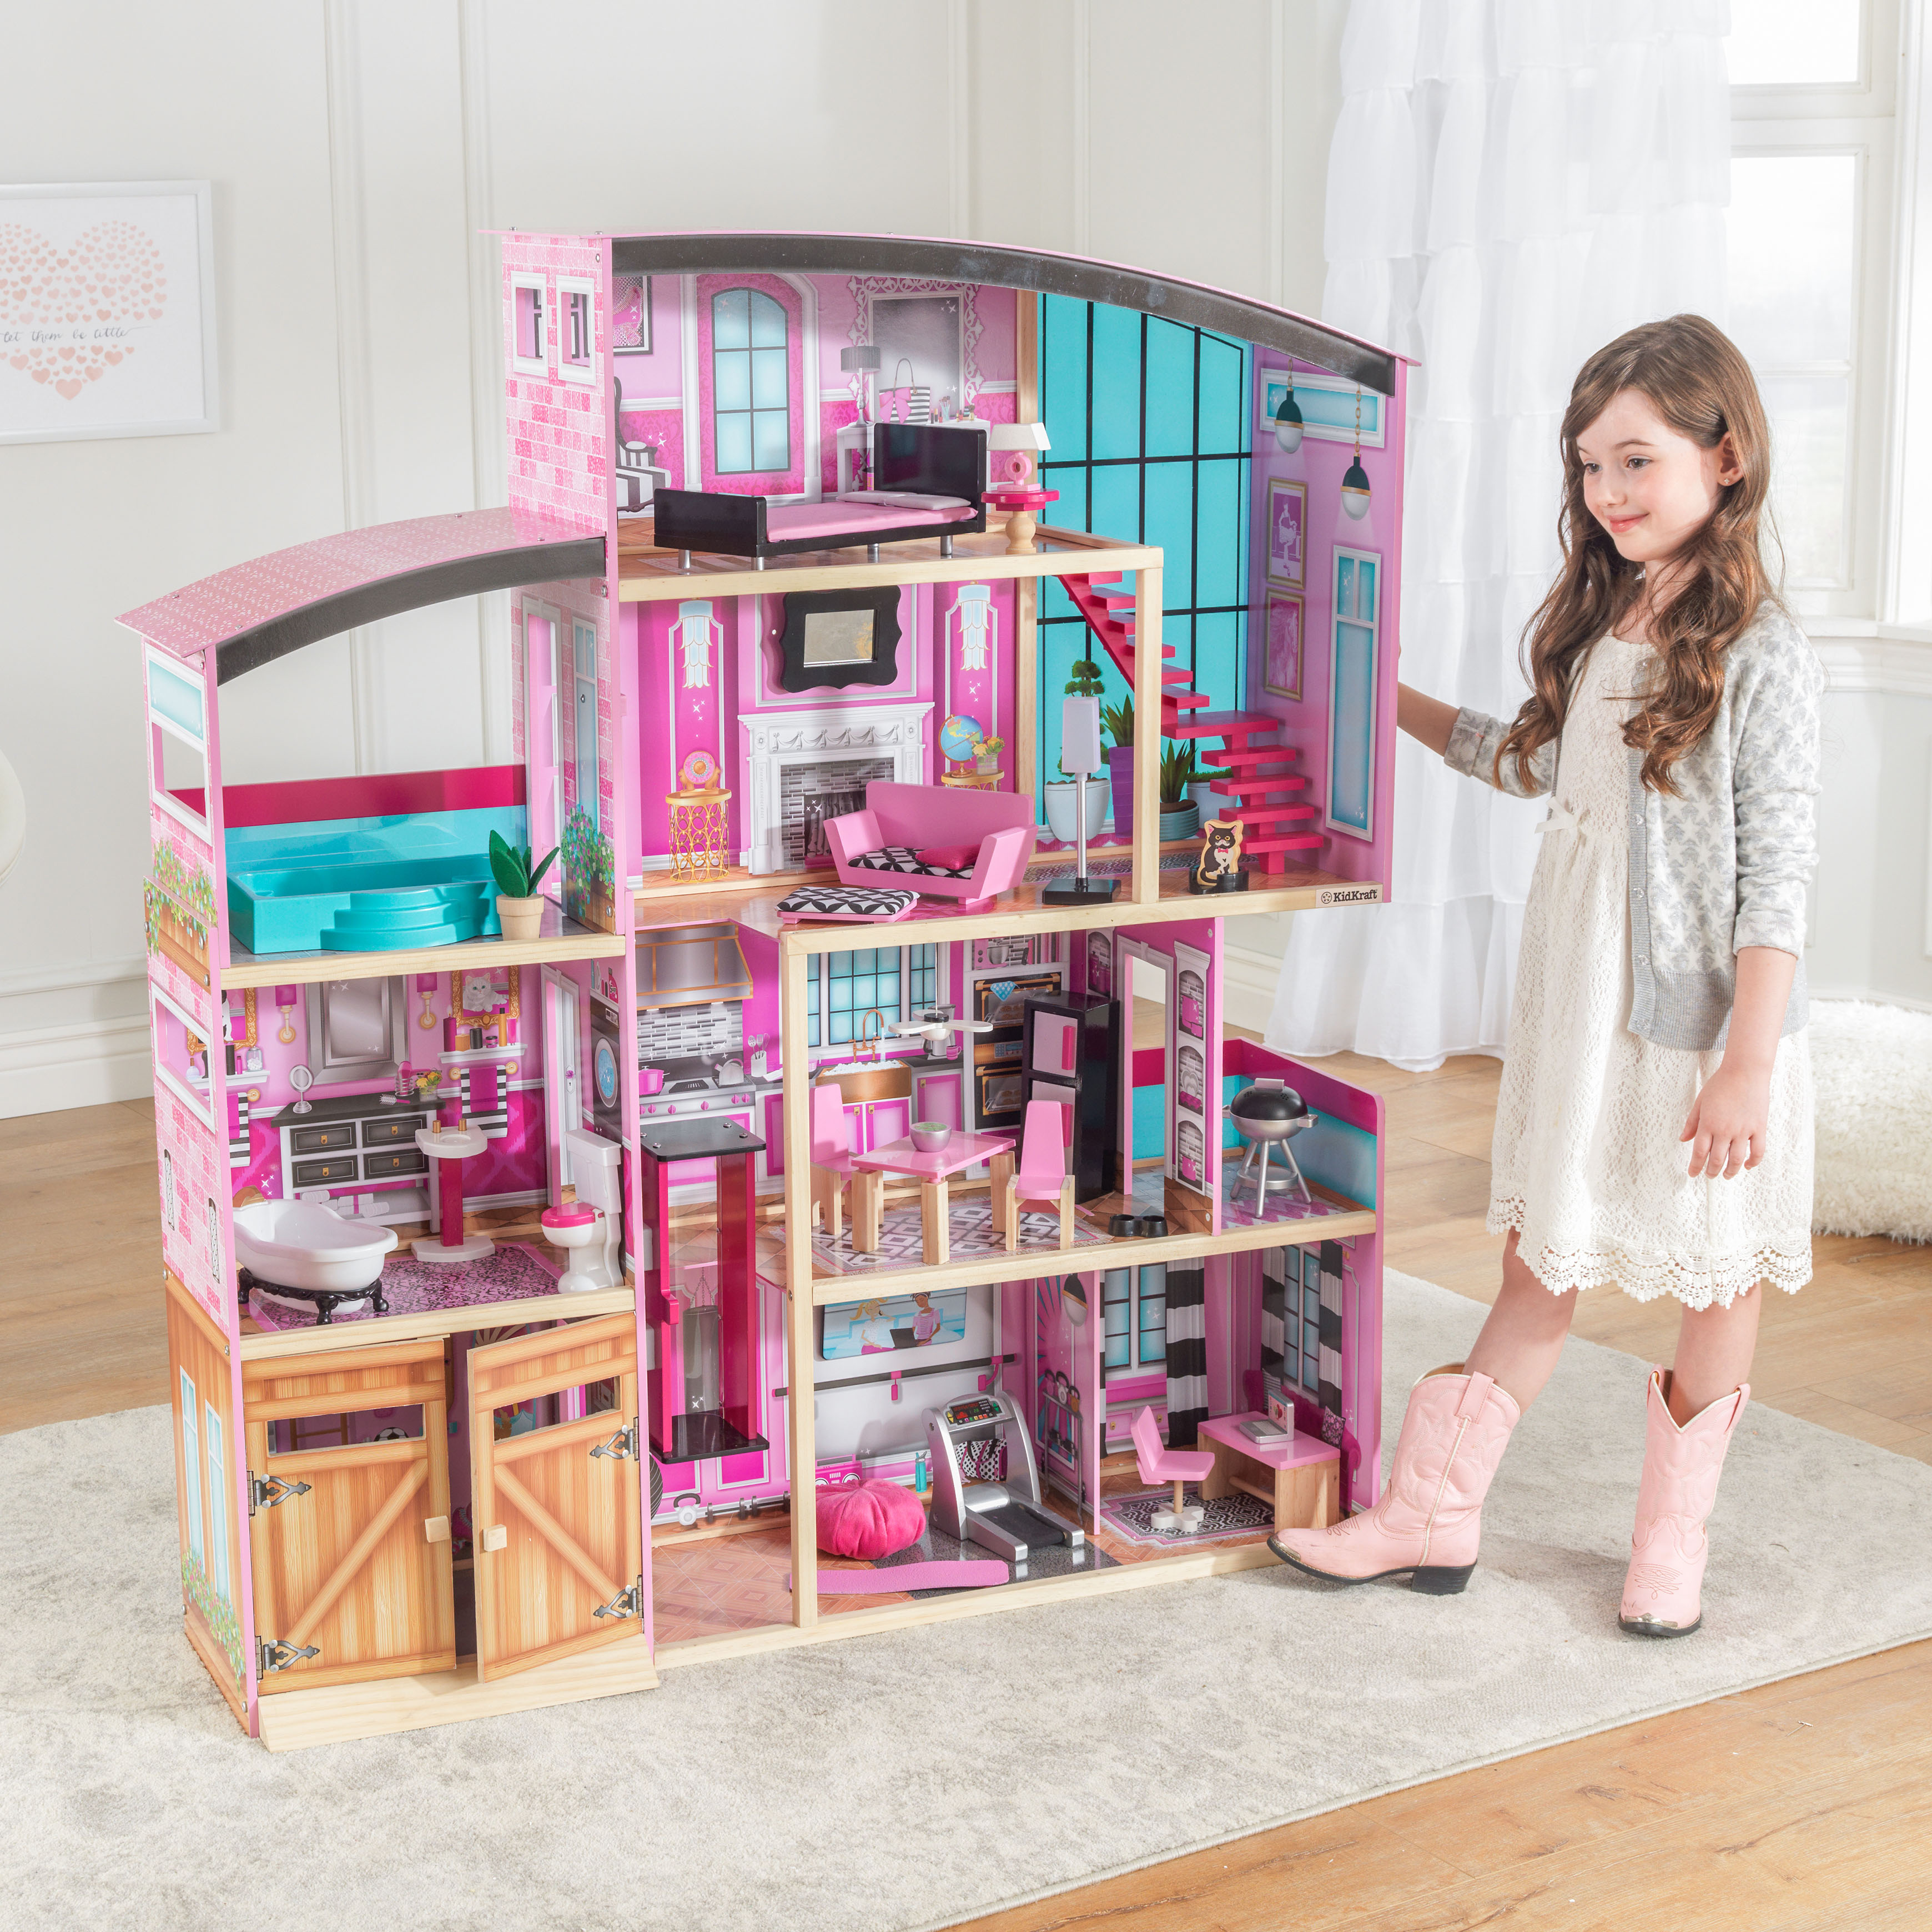 KidKraft Wooden Dollhouse Shimmer Mansion for 12 Inch Dolls